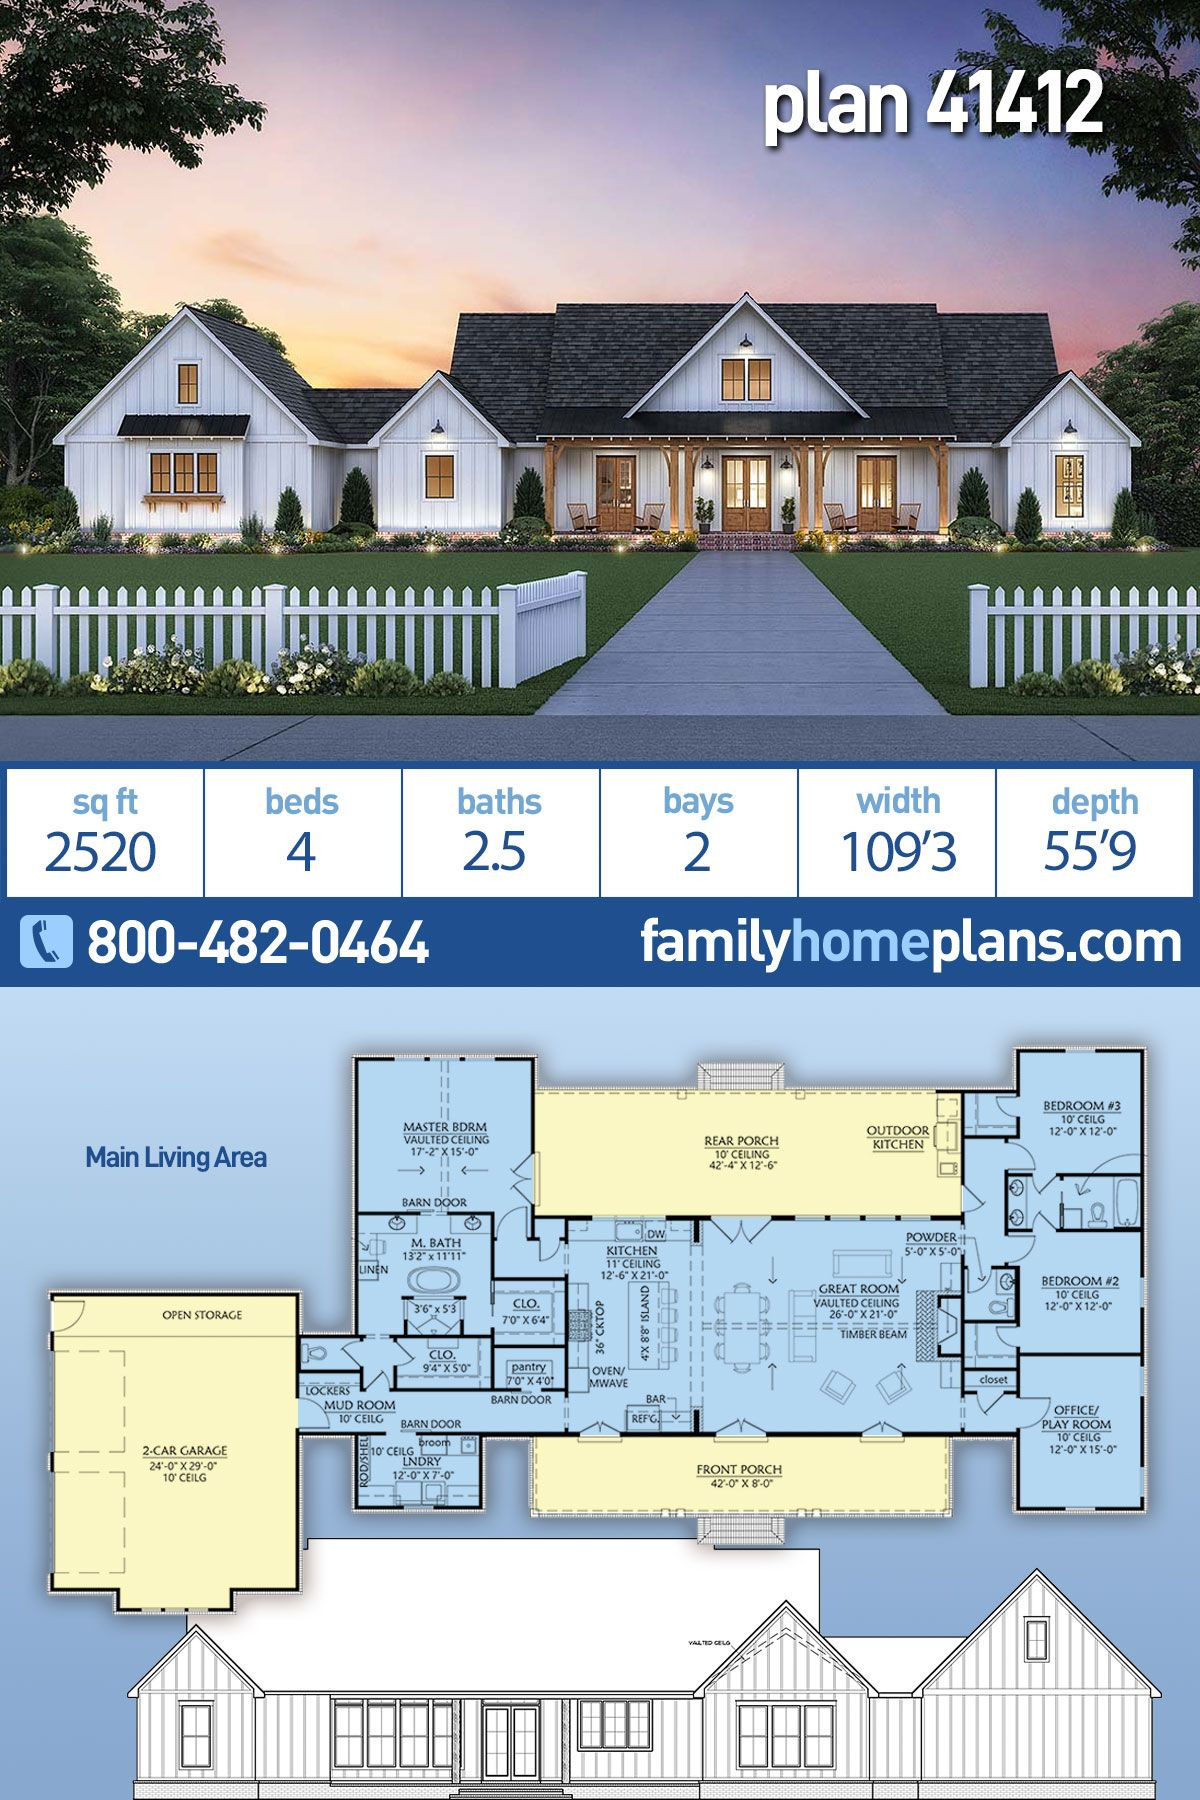 Country House Plan #41412 is 2520 Sq Ft, 3 Bedrooms, 2.5 Bathrooms and an Outdoor Kitchen